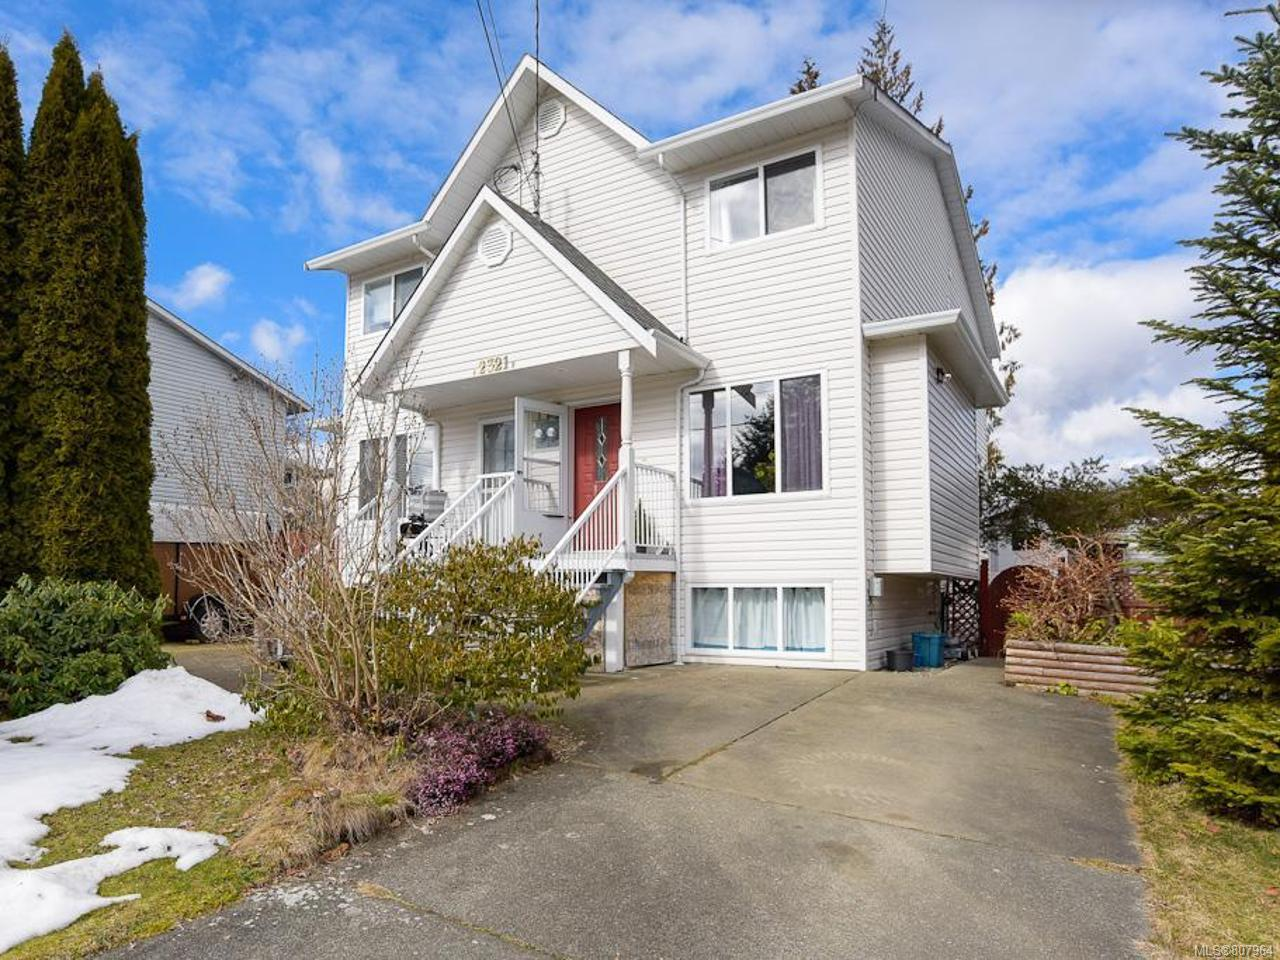 FEATURED LISTING: B - 2321 Embleton Cres COURTENAY